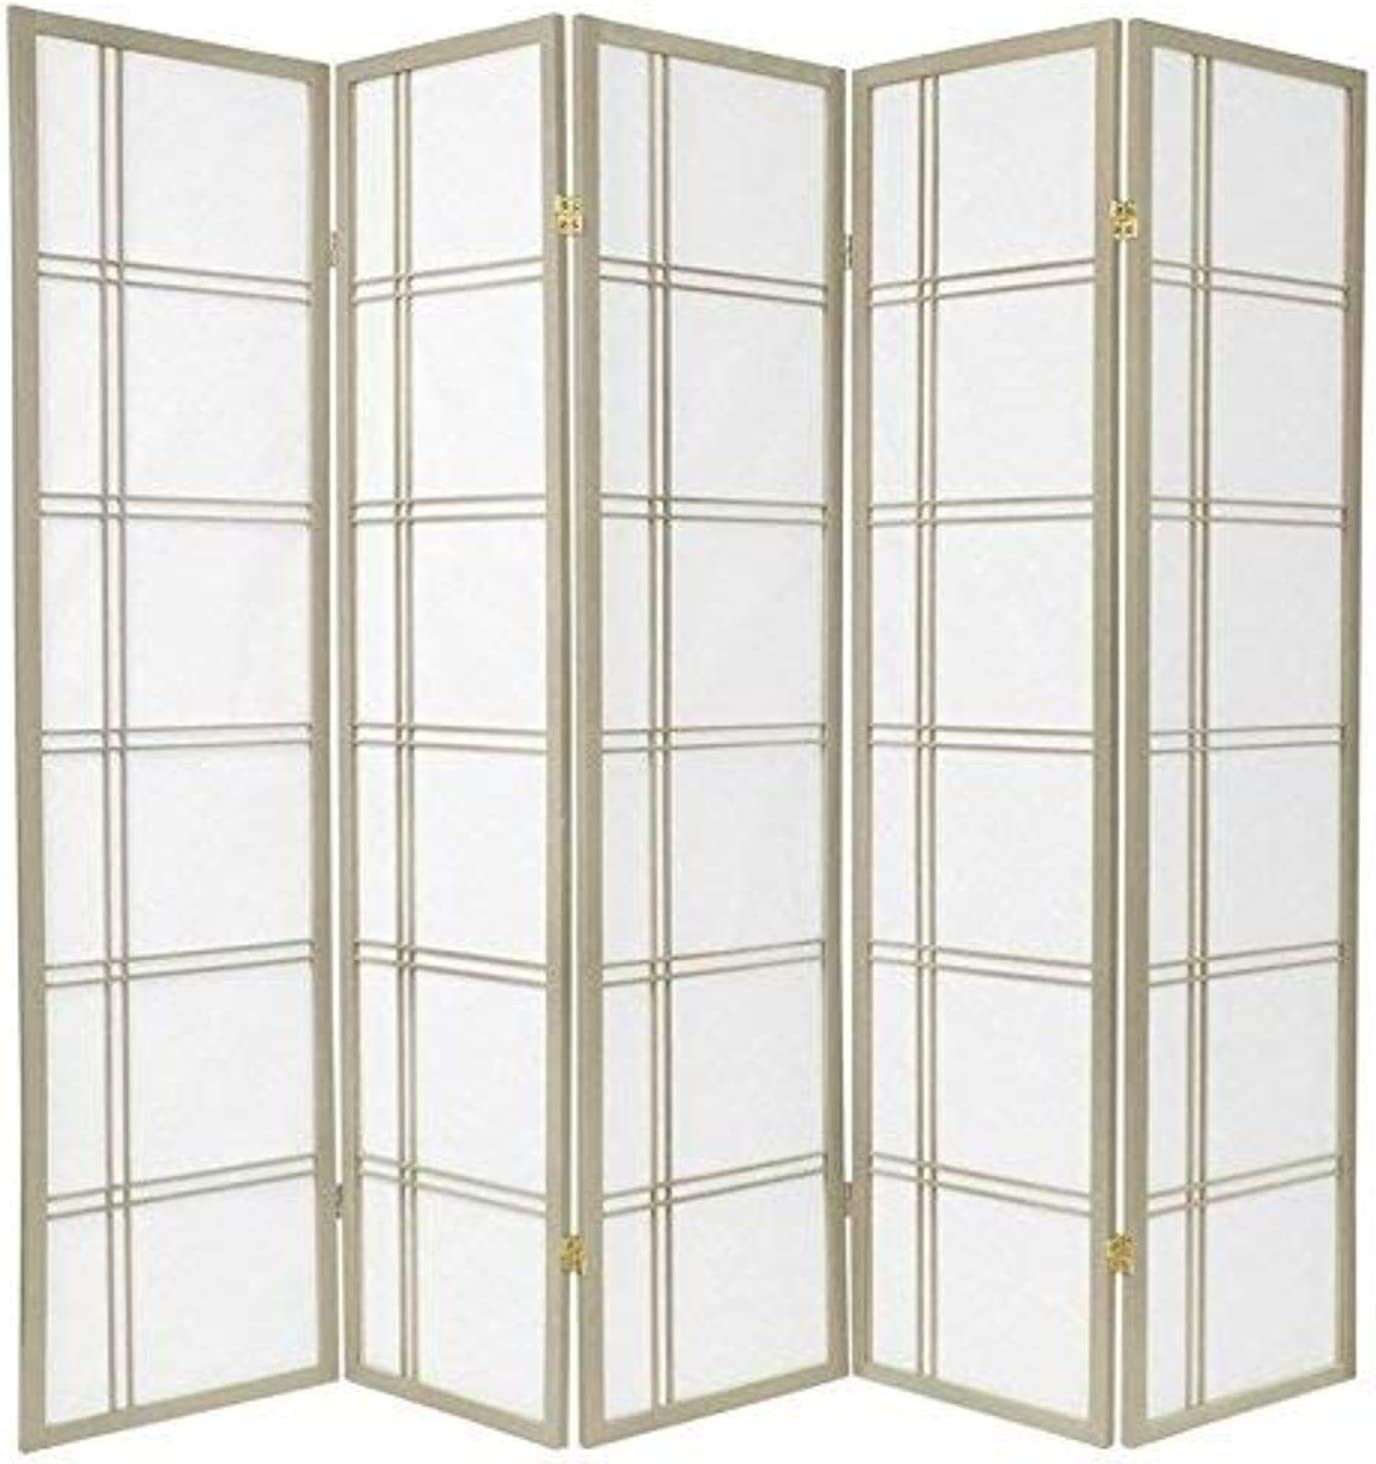 Oriental Furniture 6 ft. Tall Double Cross Shoji Screen - Special Edition - Grey - 5 Panels